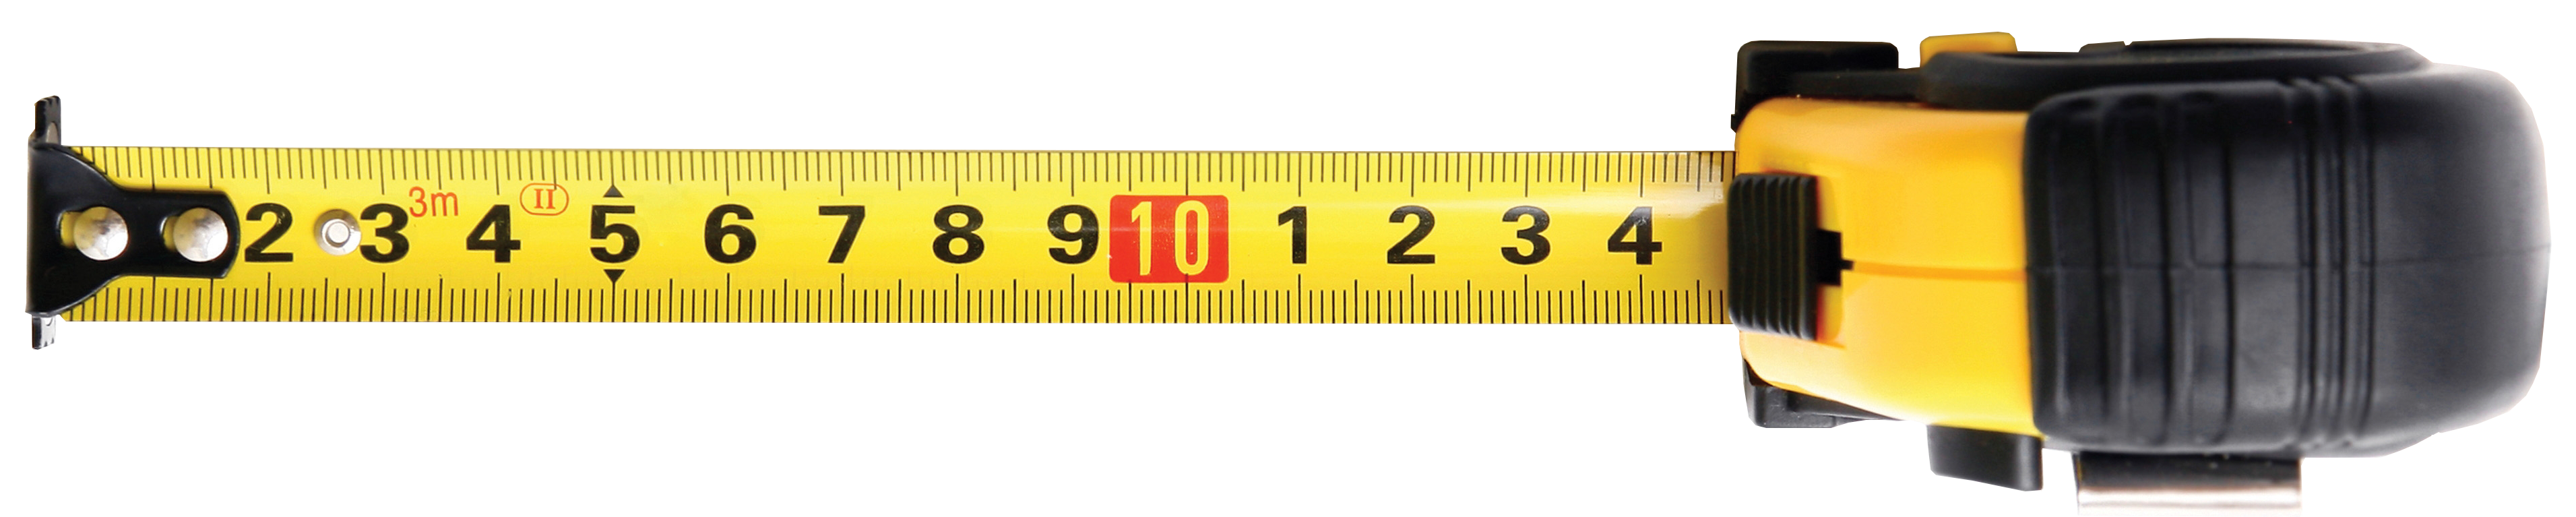 Measure Tape Png Image Tape Measurements Objects